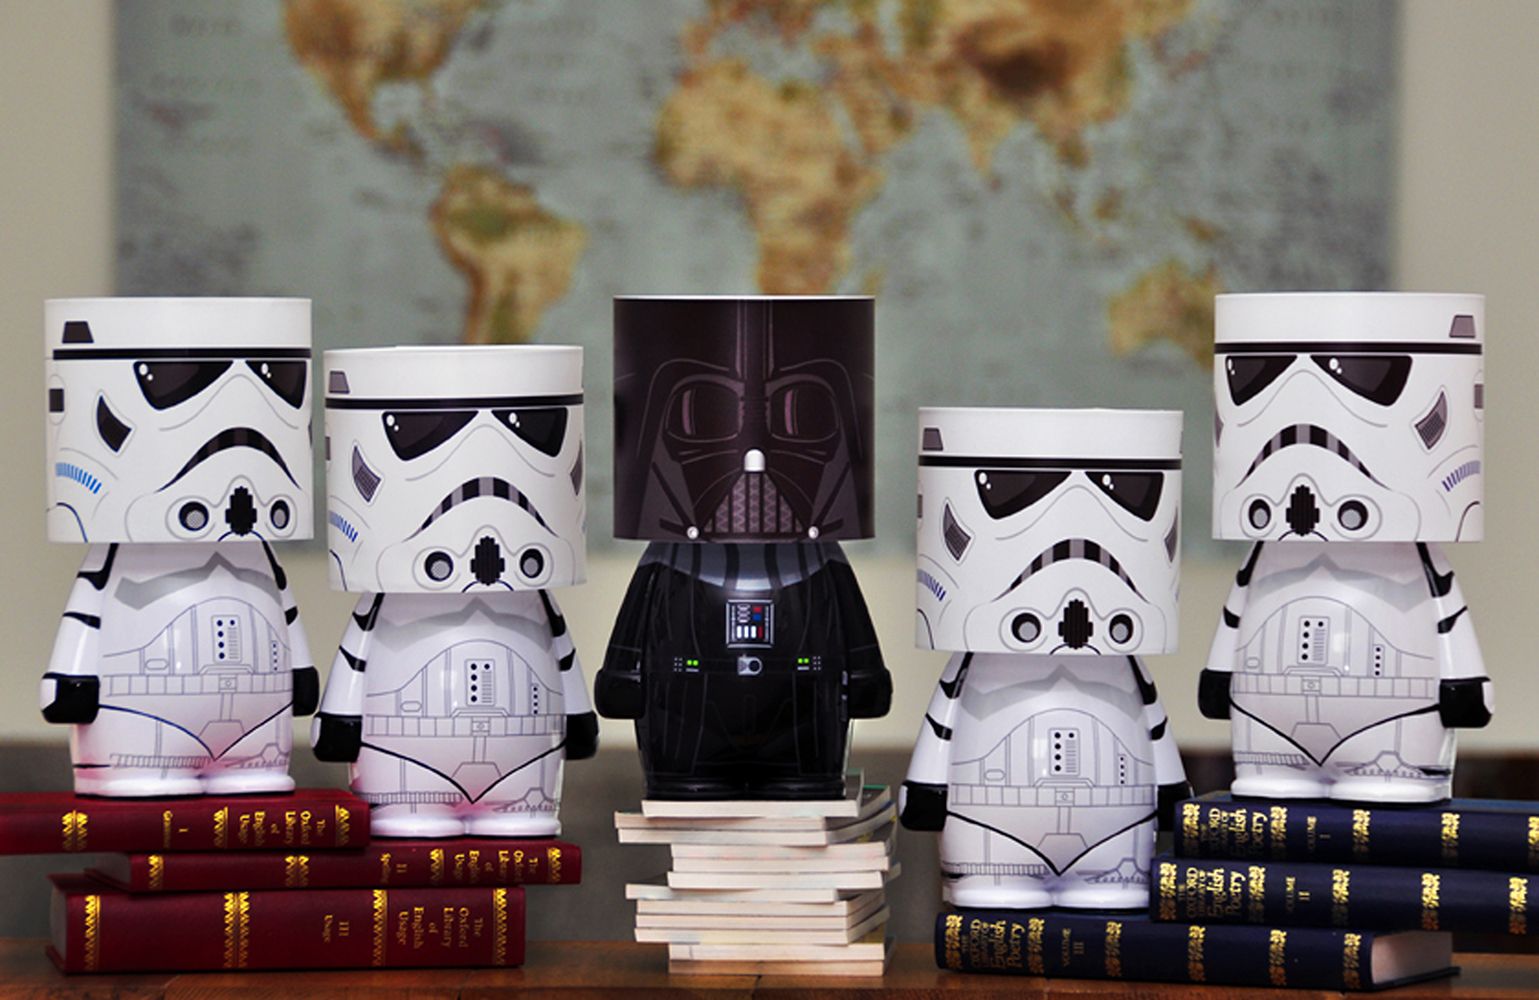 lampe look alite stormtrooper star wars achat cadeau. Black Bedroom Furniture Sets. Home Design Ideas